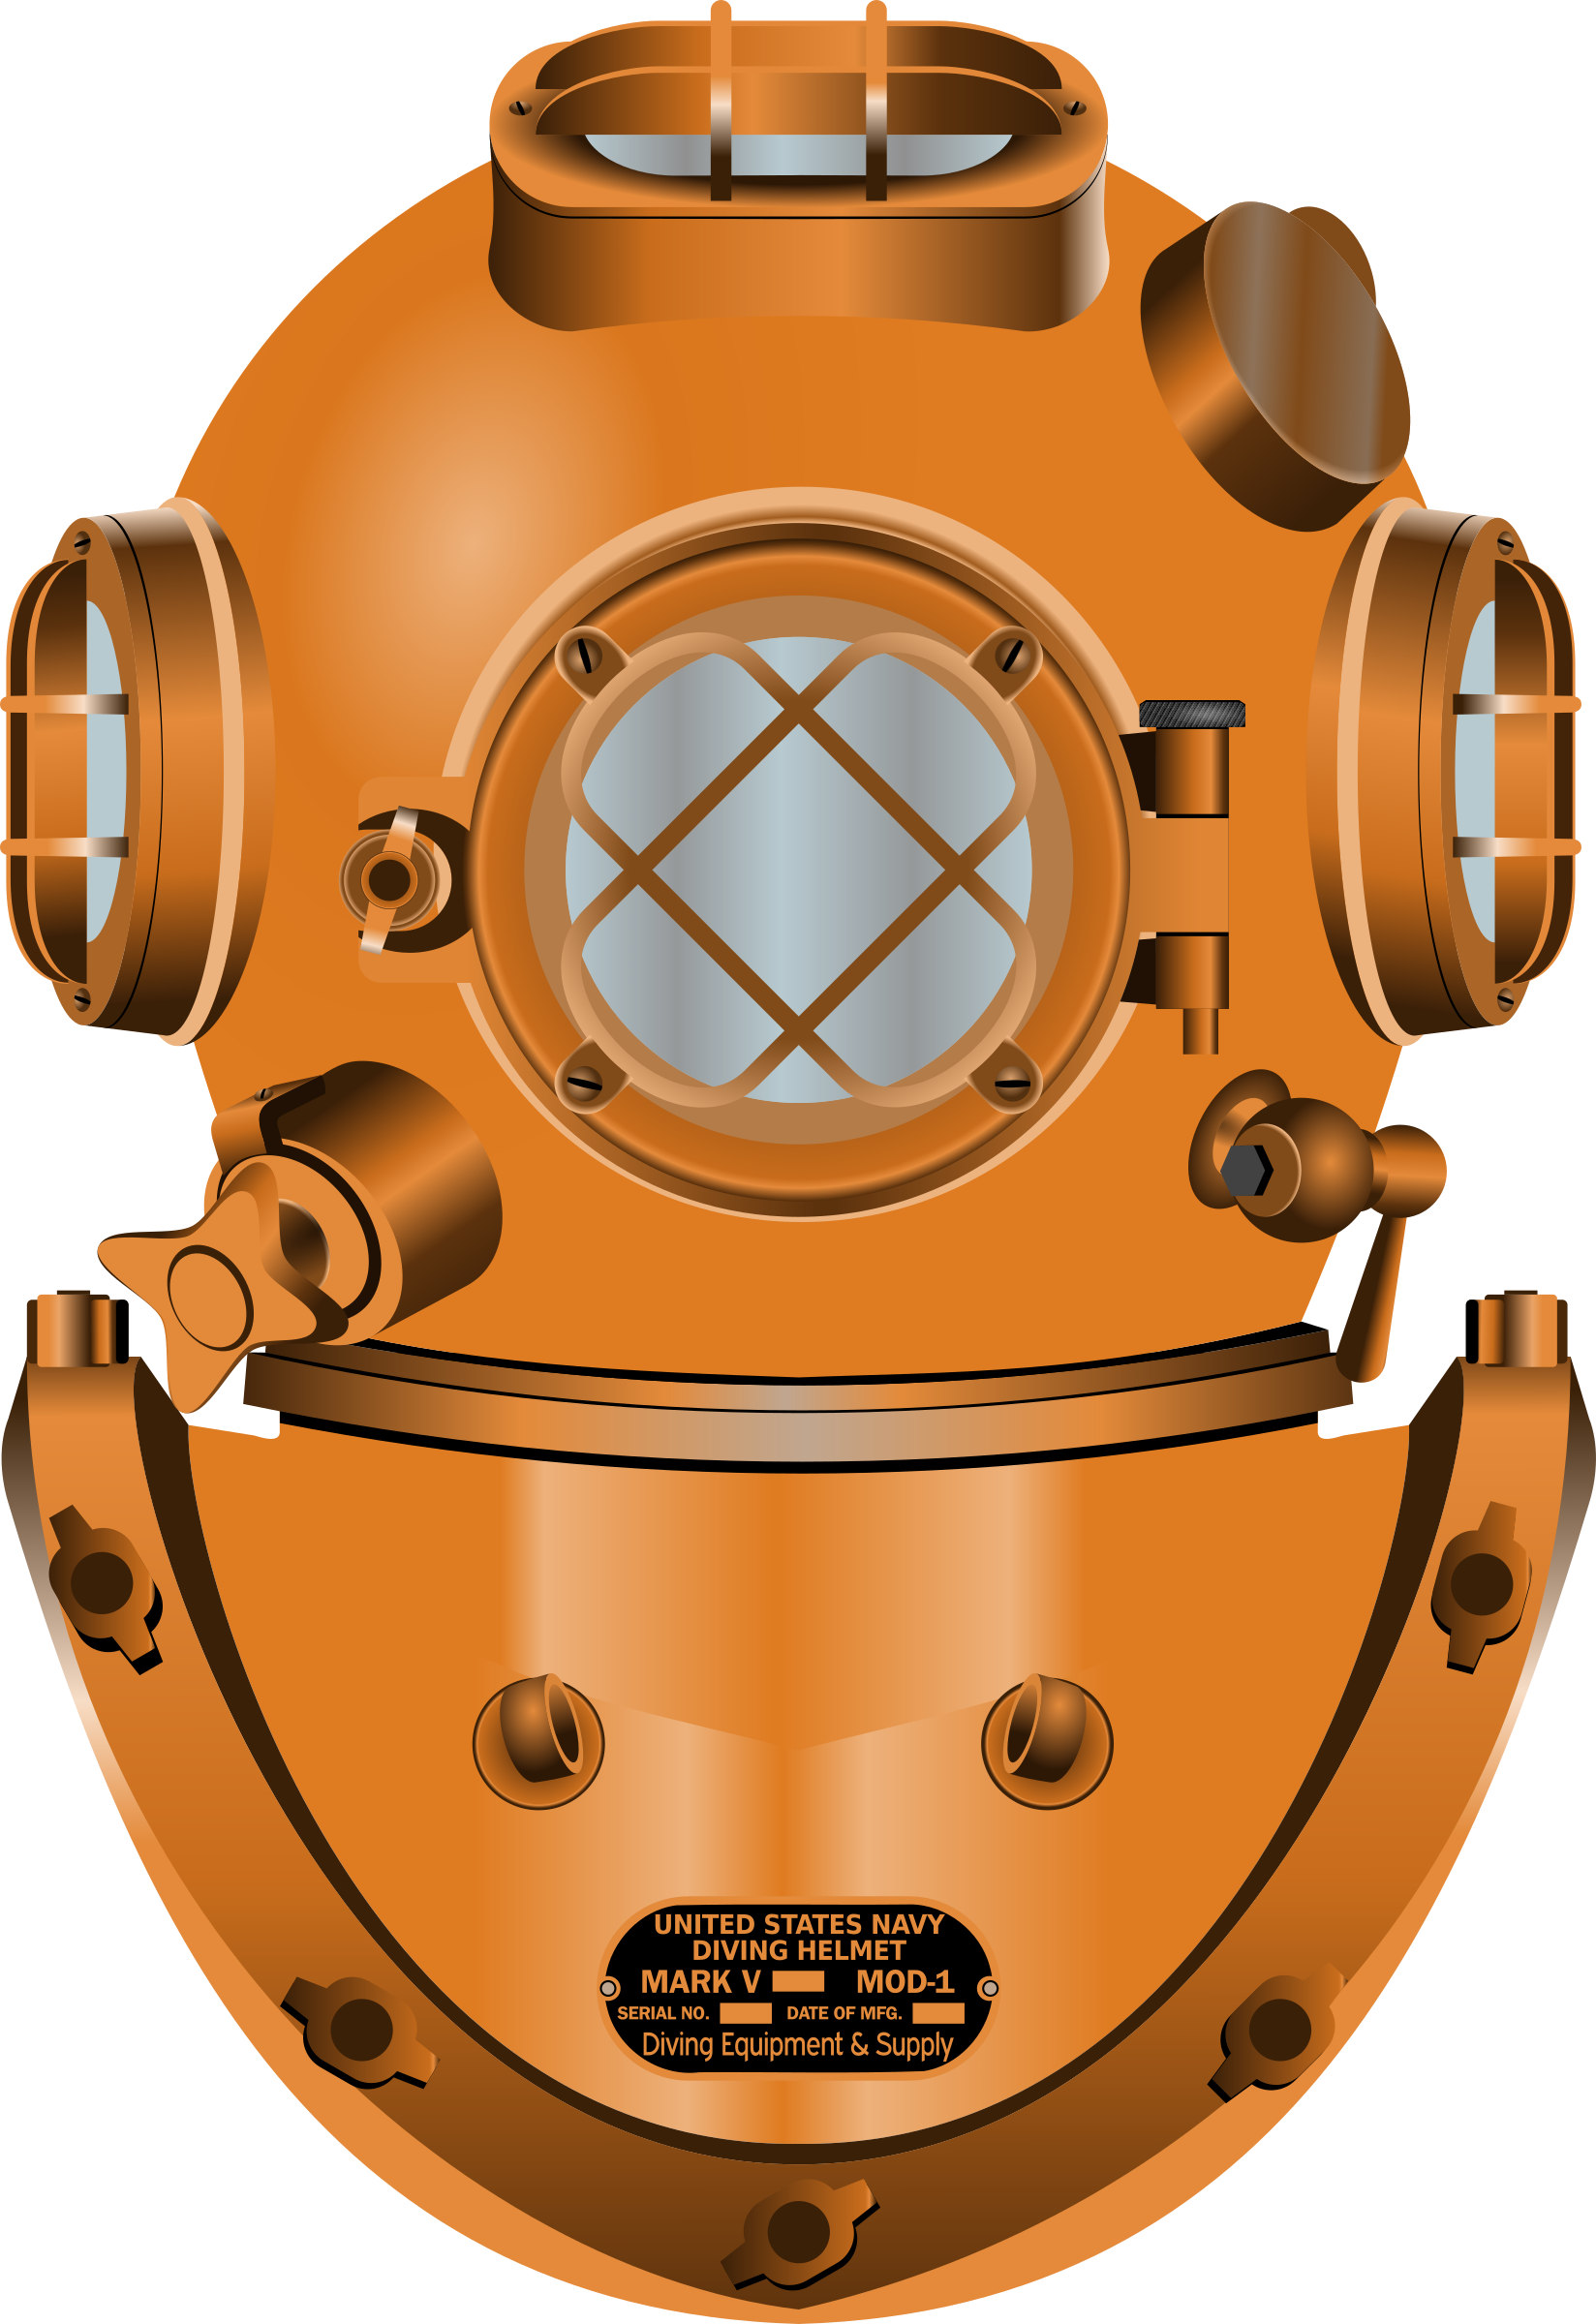 Diver clipart marine science. Diving helmet by conte